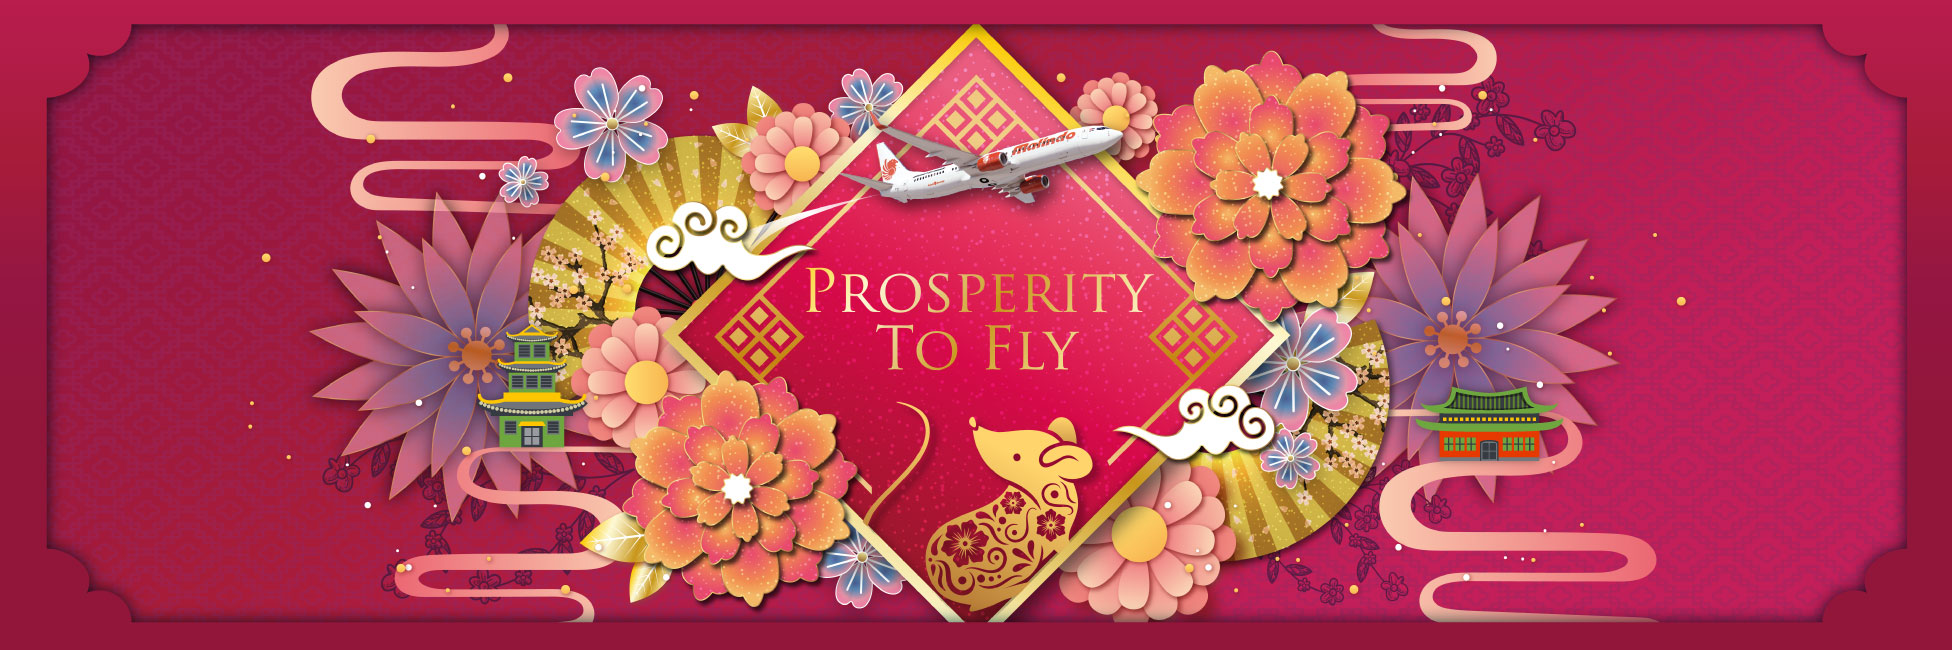 Prosperity to fly with Malindo Air cny 20